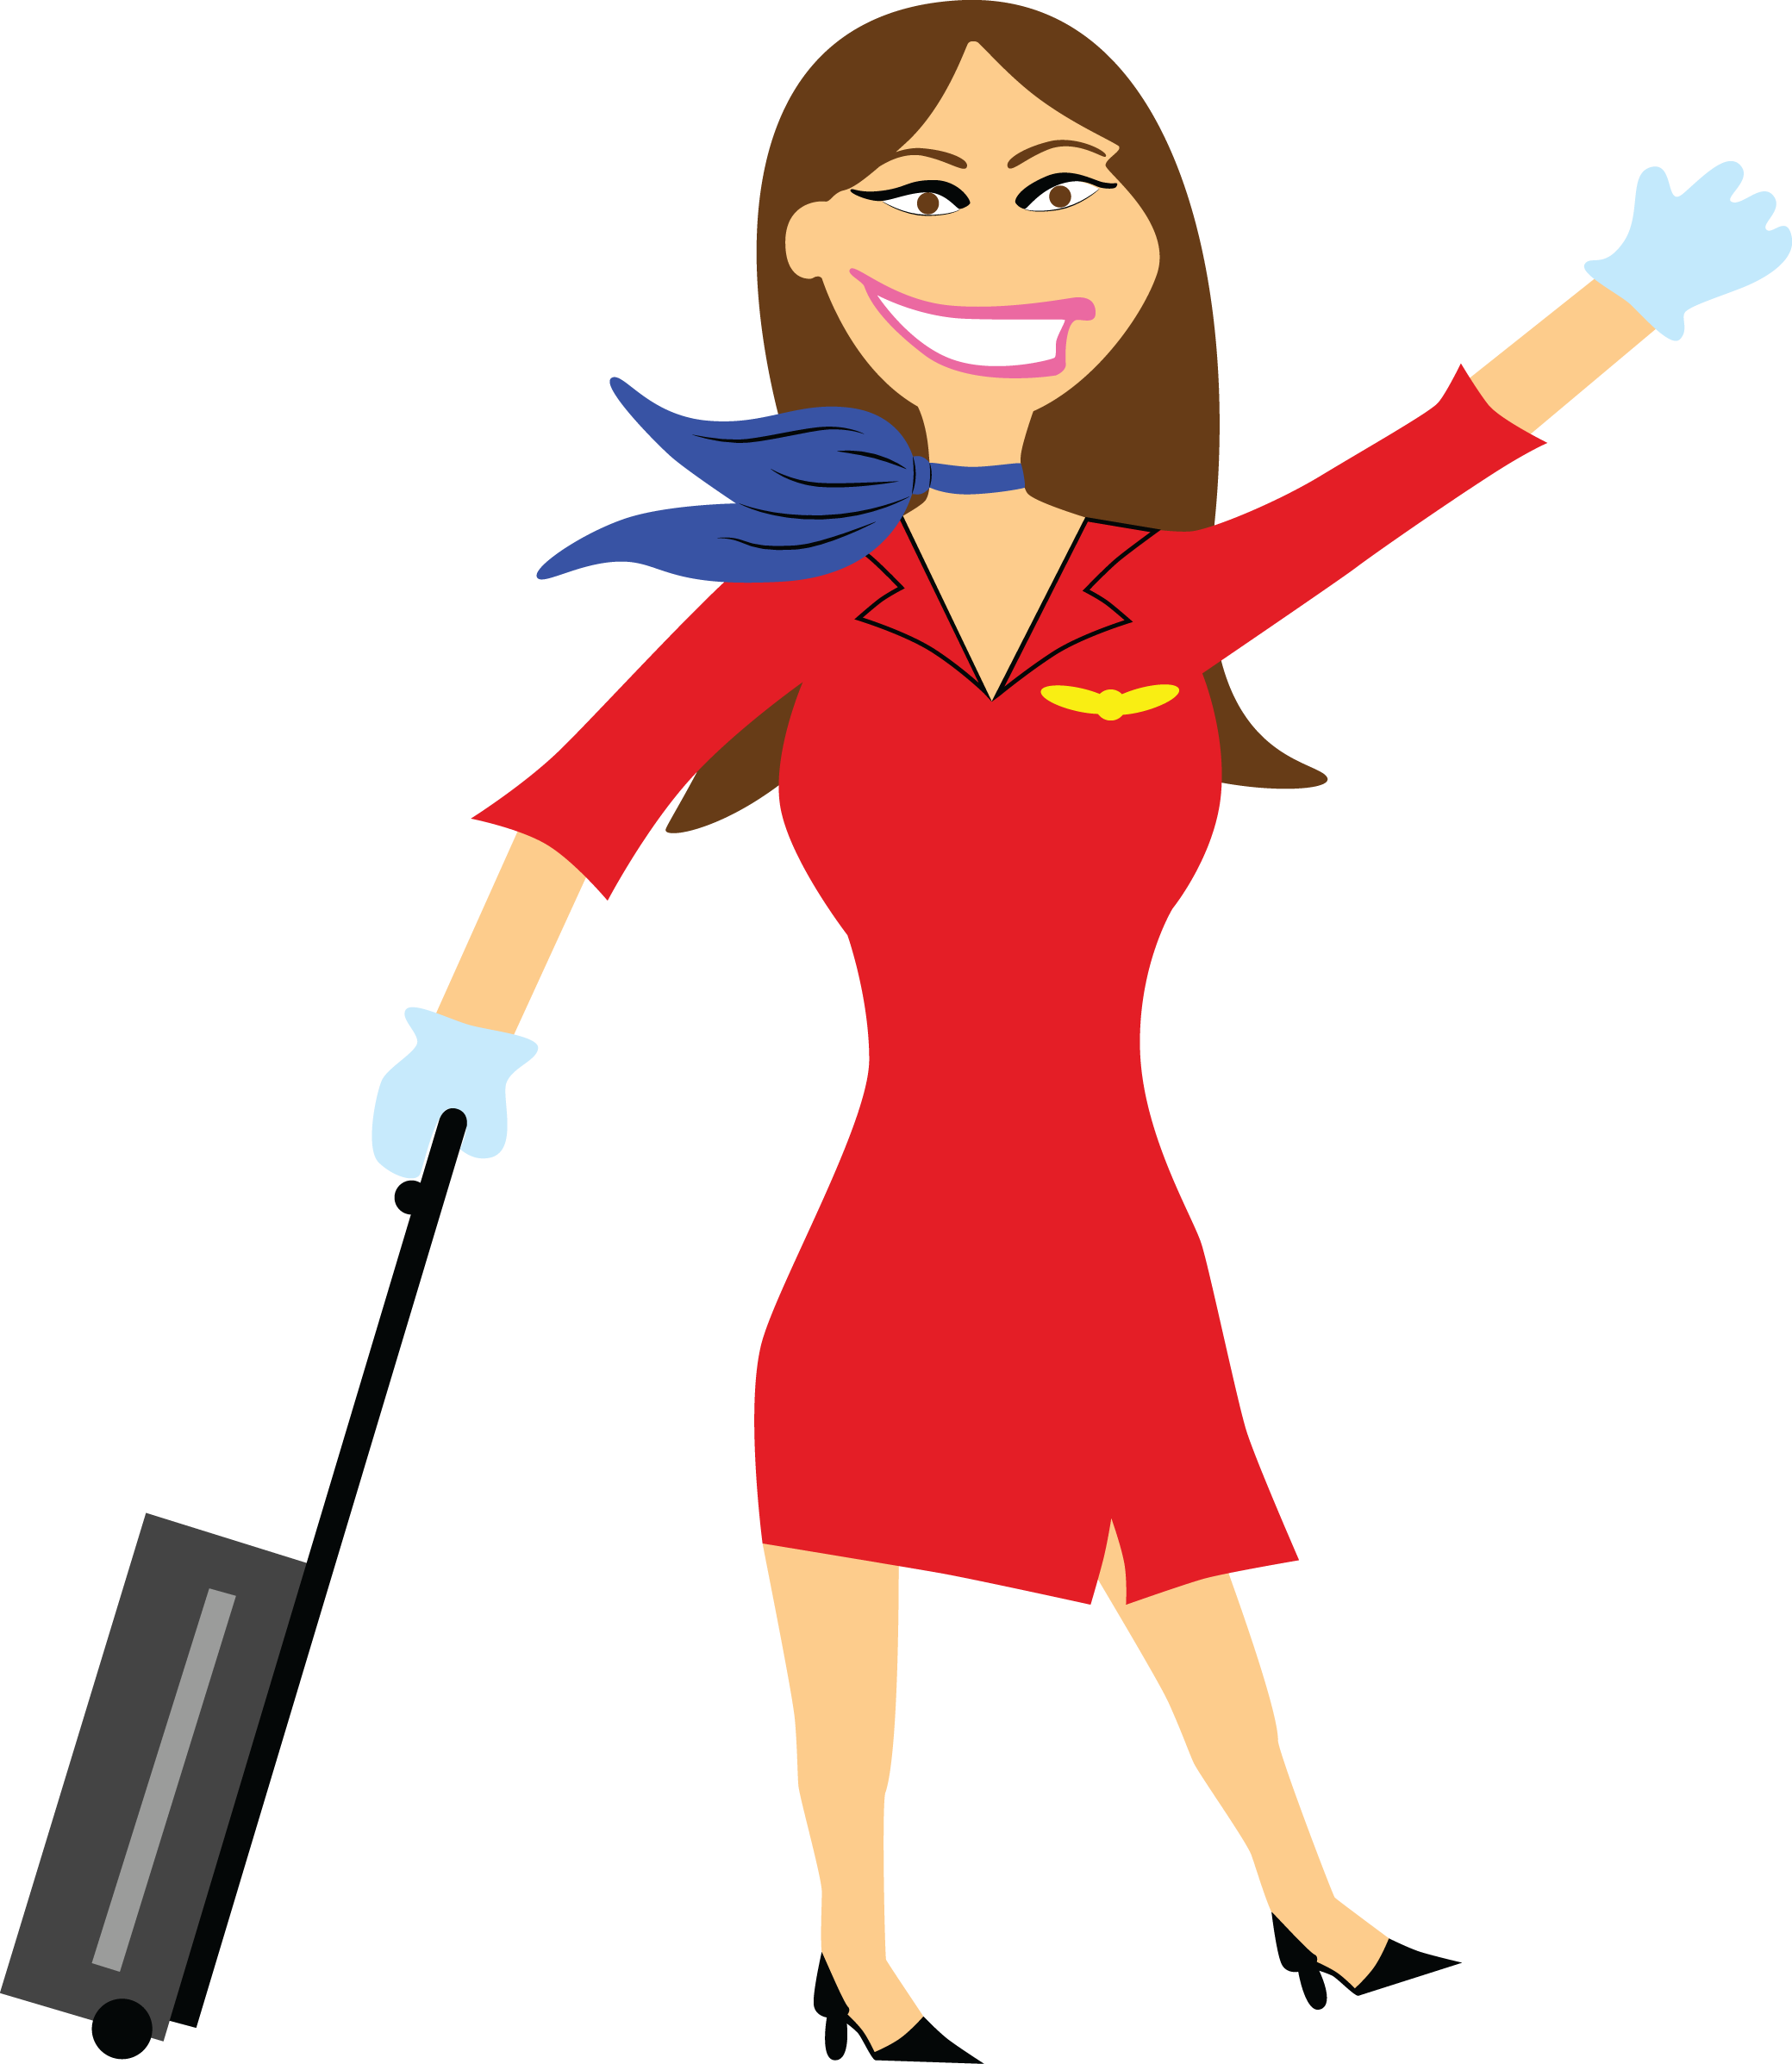 Png transparent images all. Girl clipart flight attendant